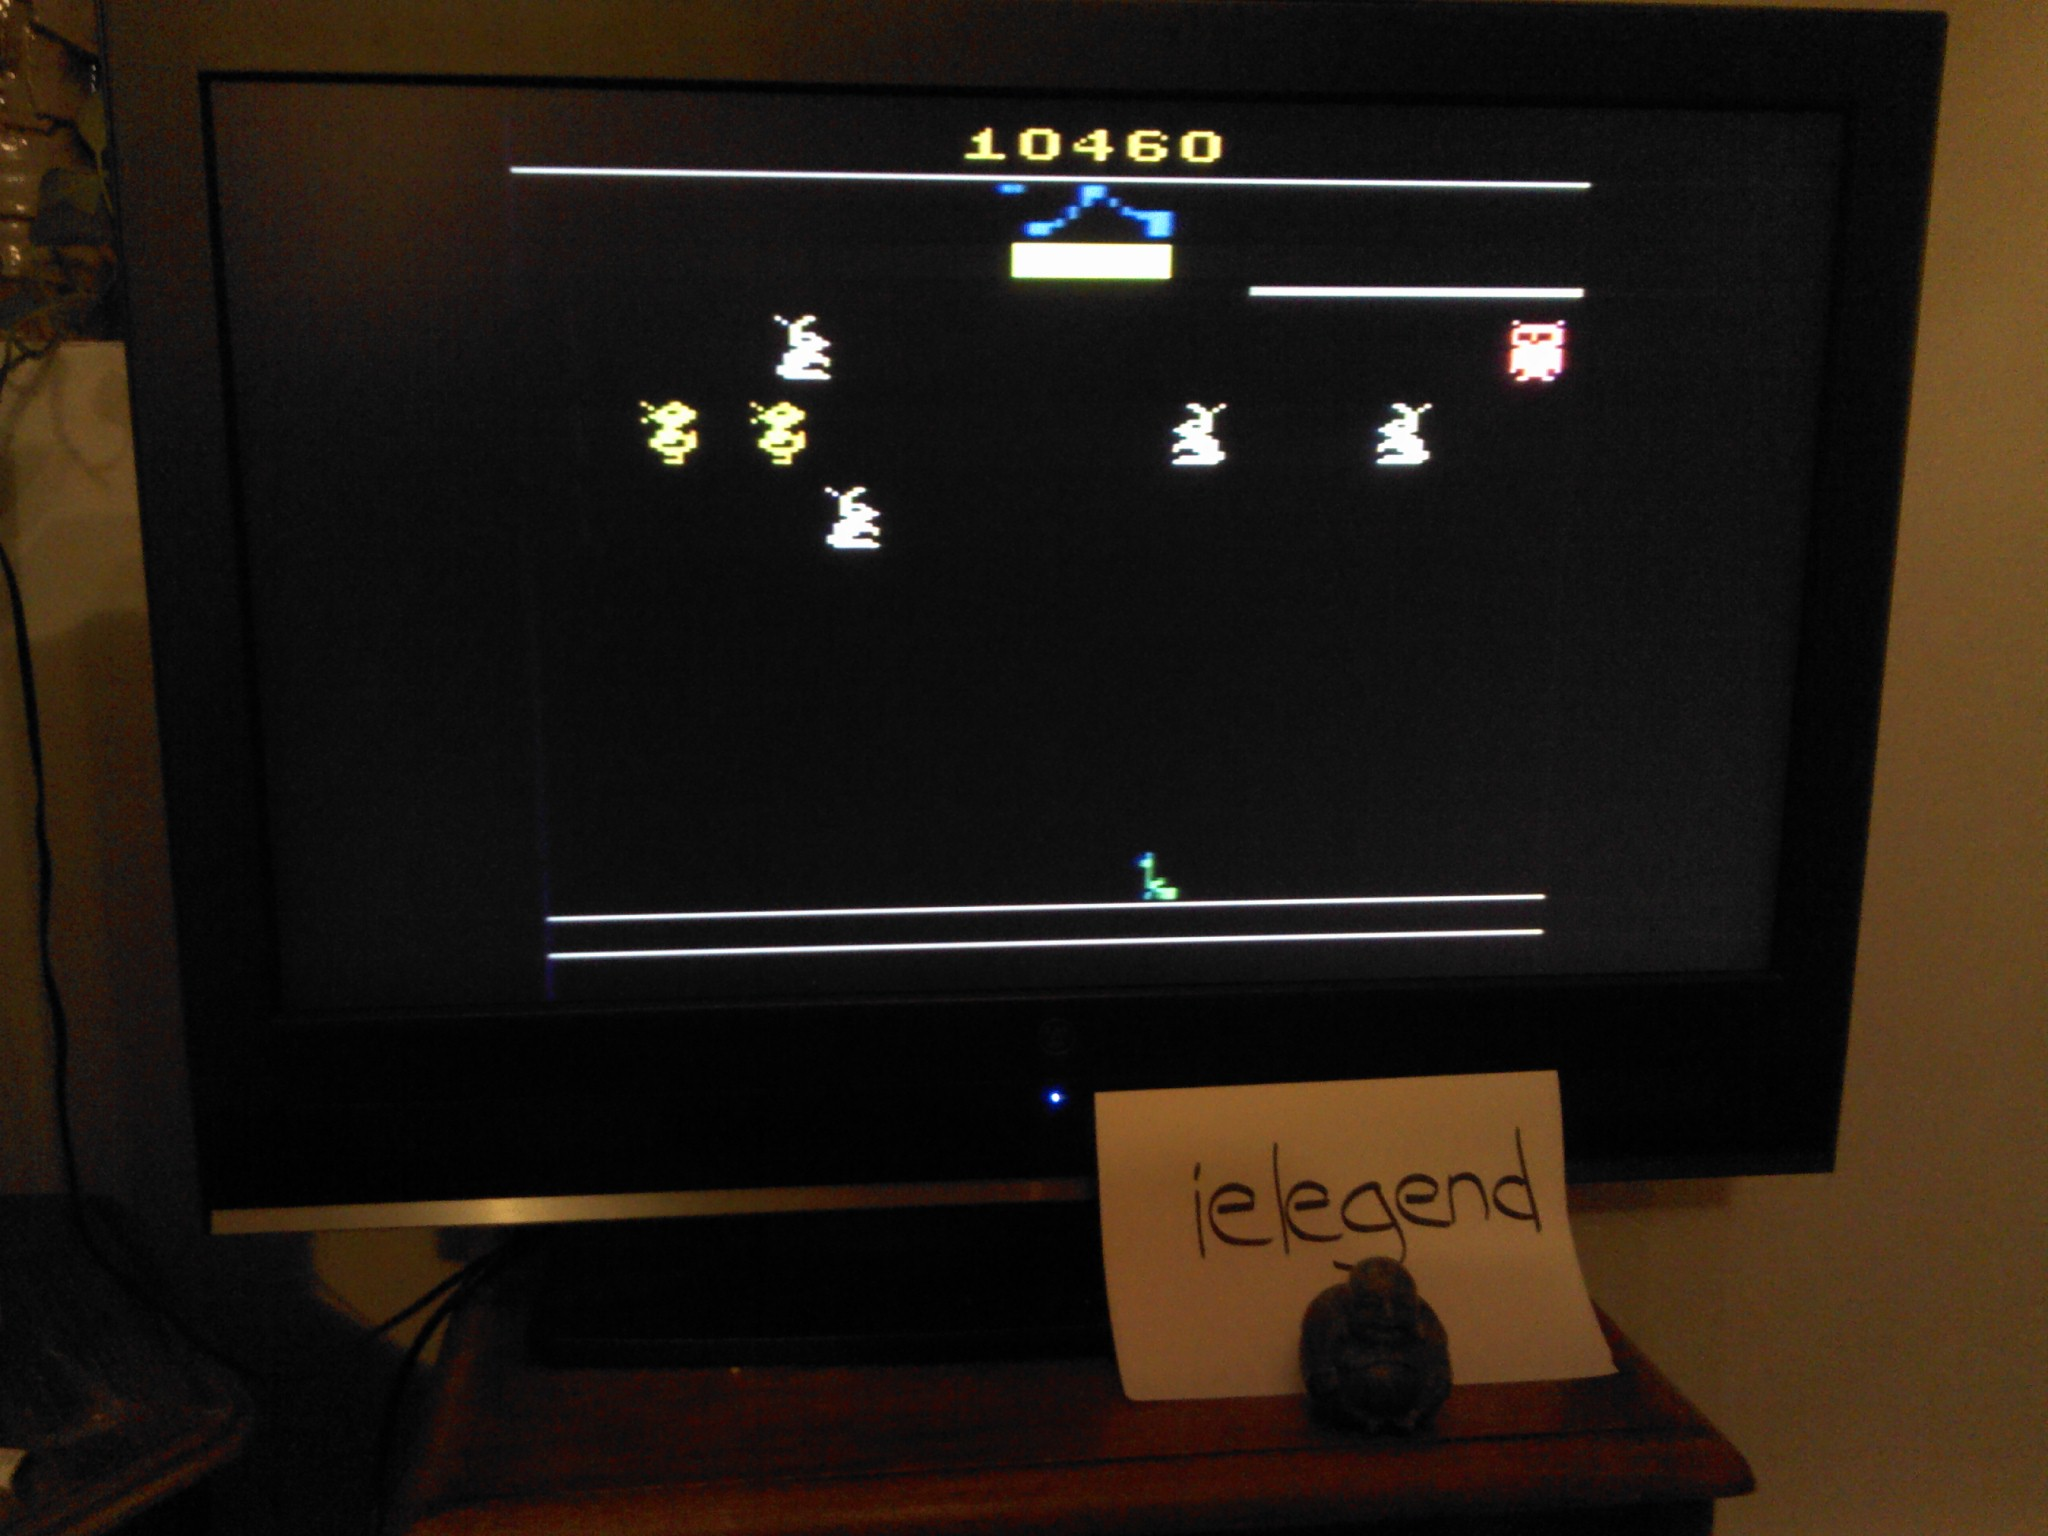 ielegend: Carnival (Atari 2600 Novice/B) 10,460 points on 2014-04-02 15:32:15